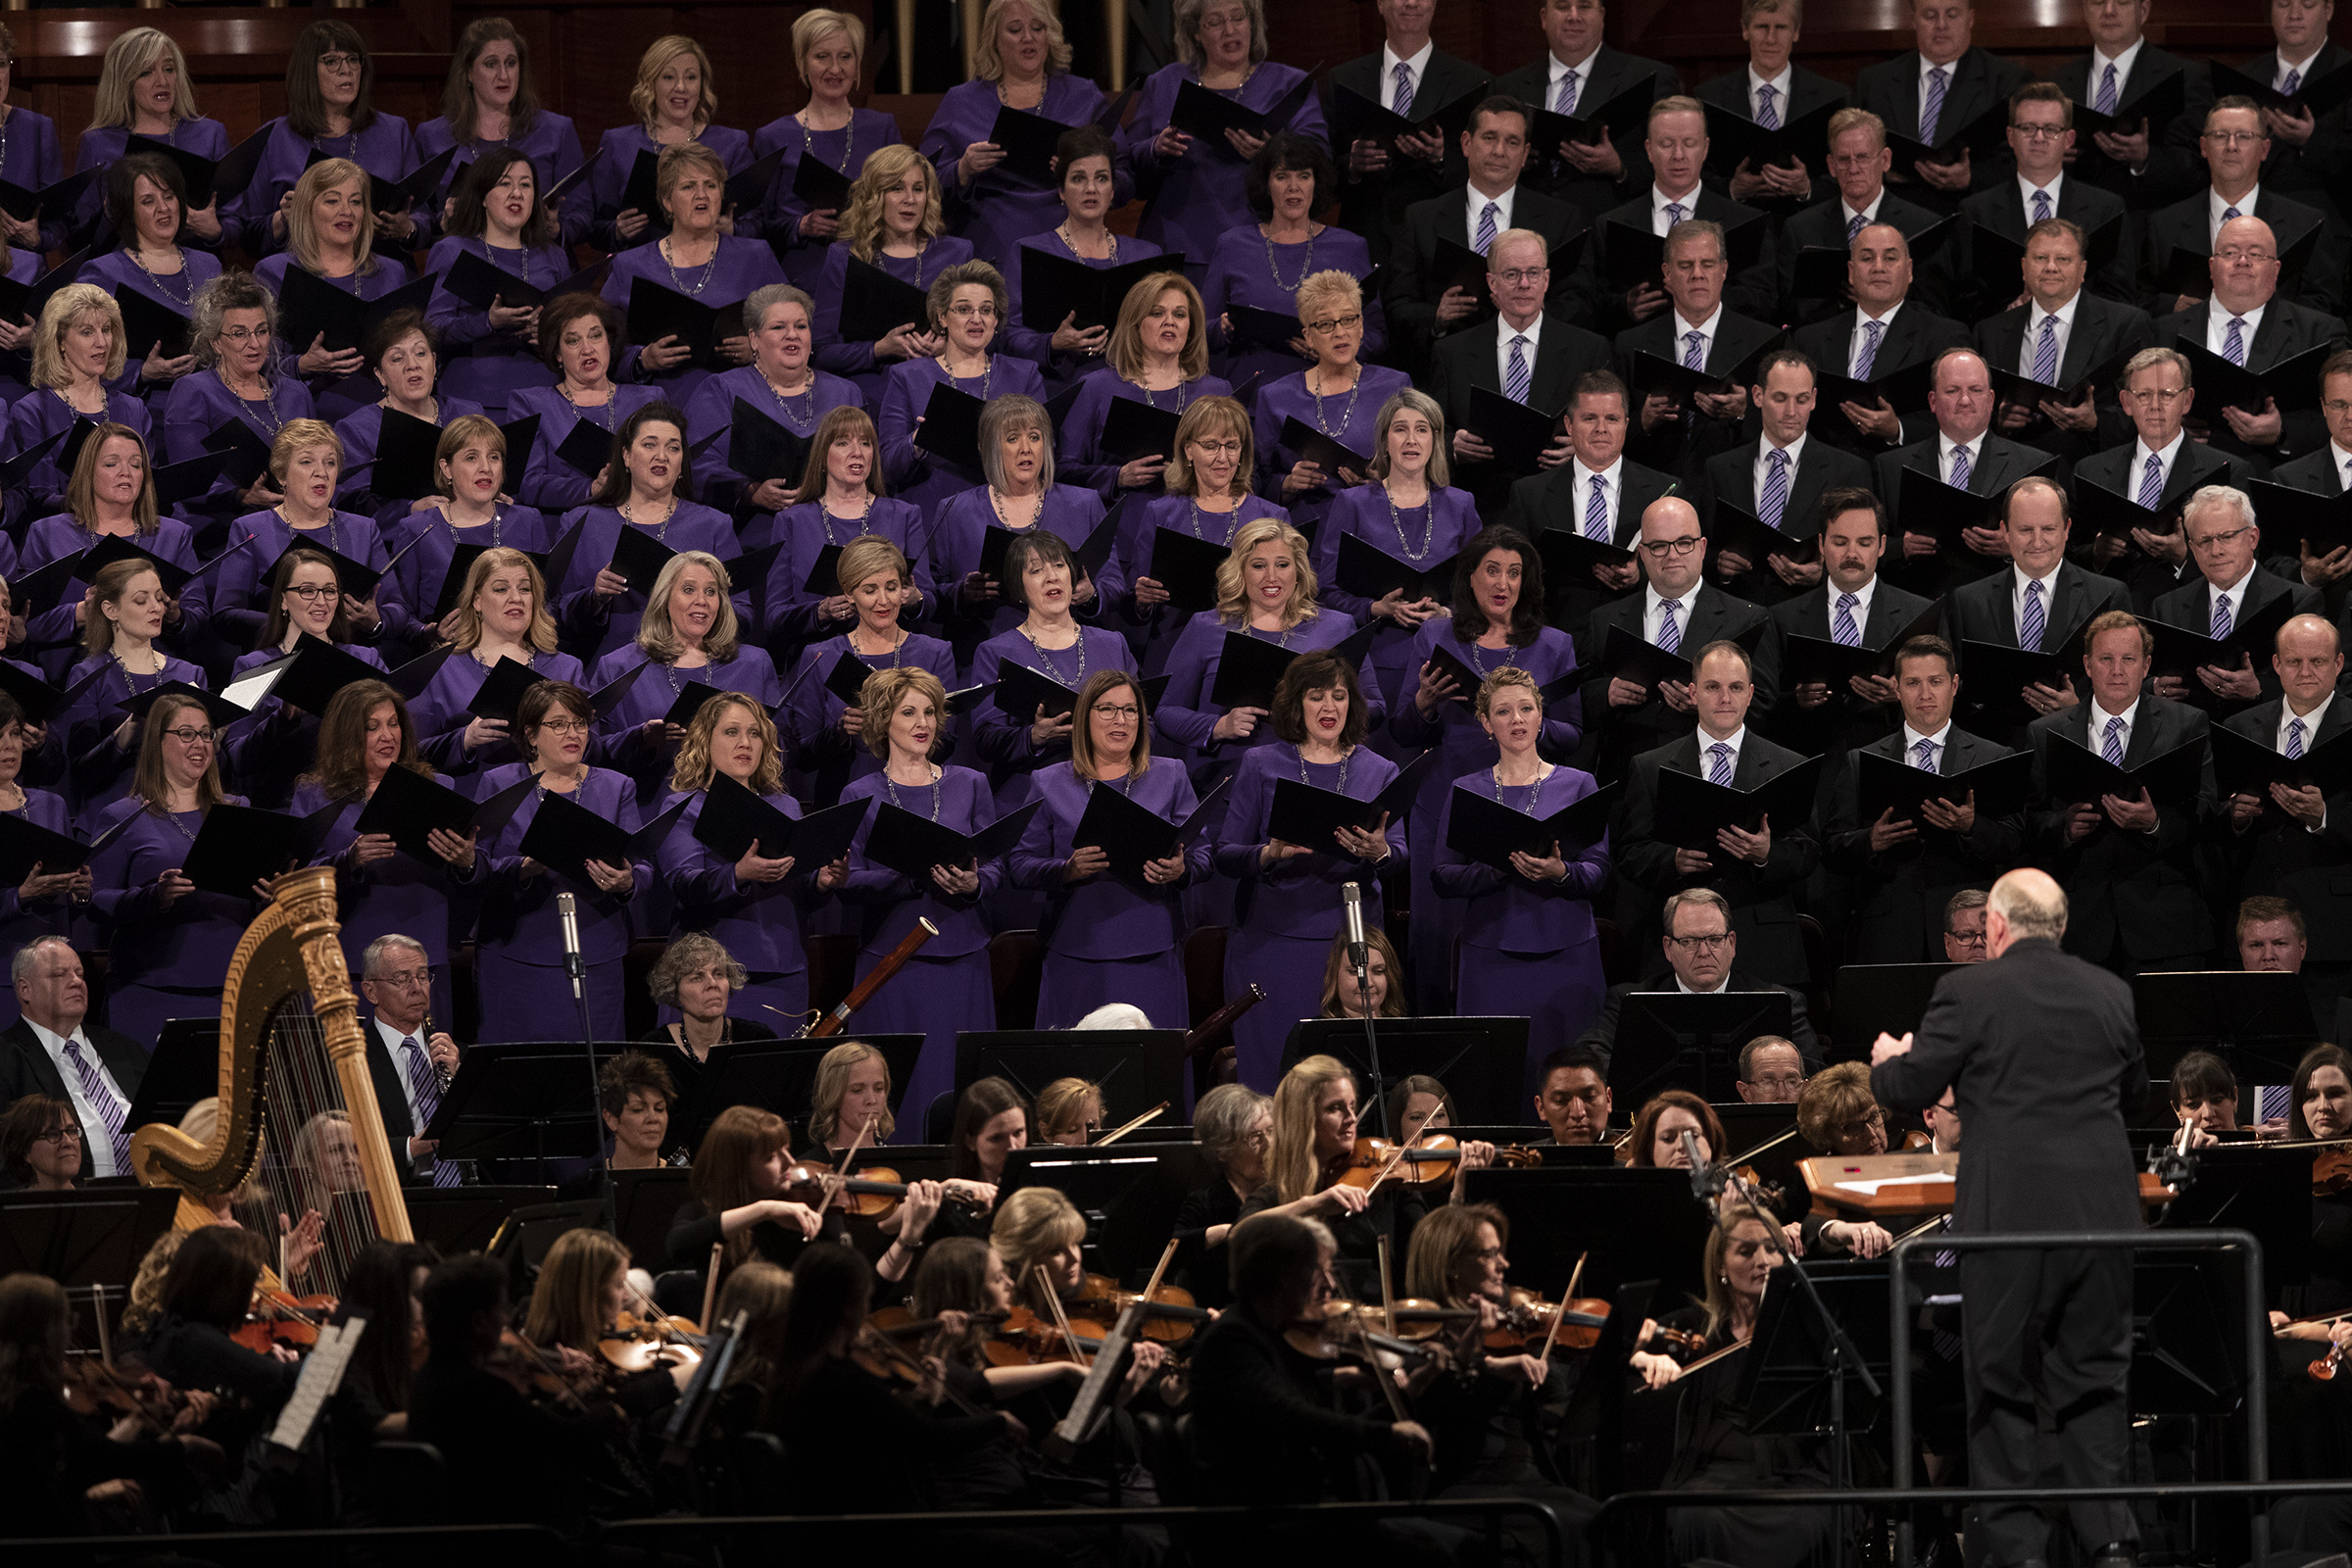 The Tabernacle Choir at Temple Square's expected return to rehearsals after a 17-month delay due to COVID-19 has been postponed.